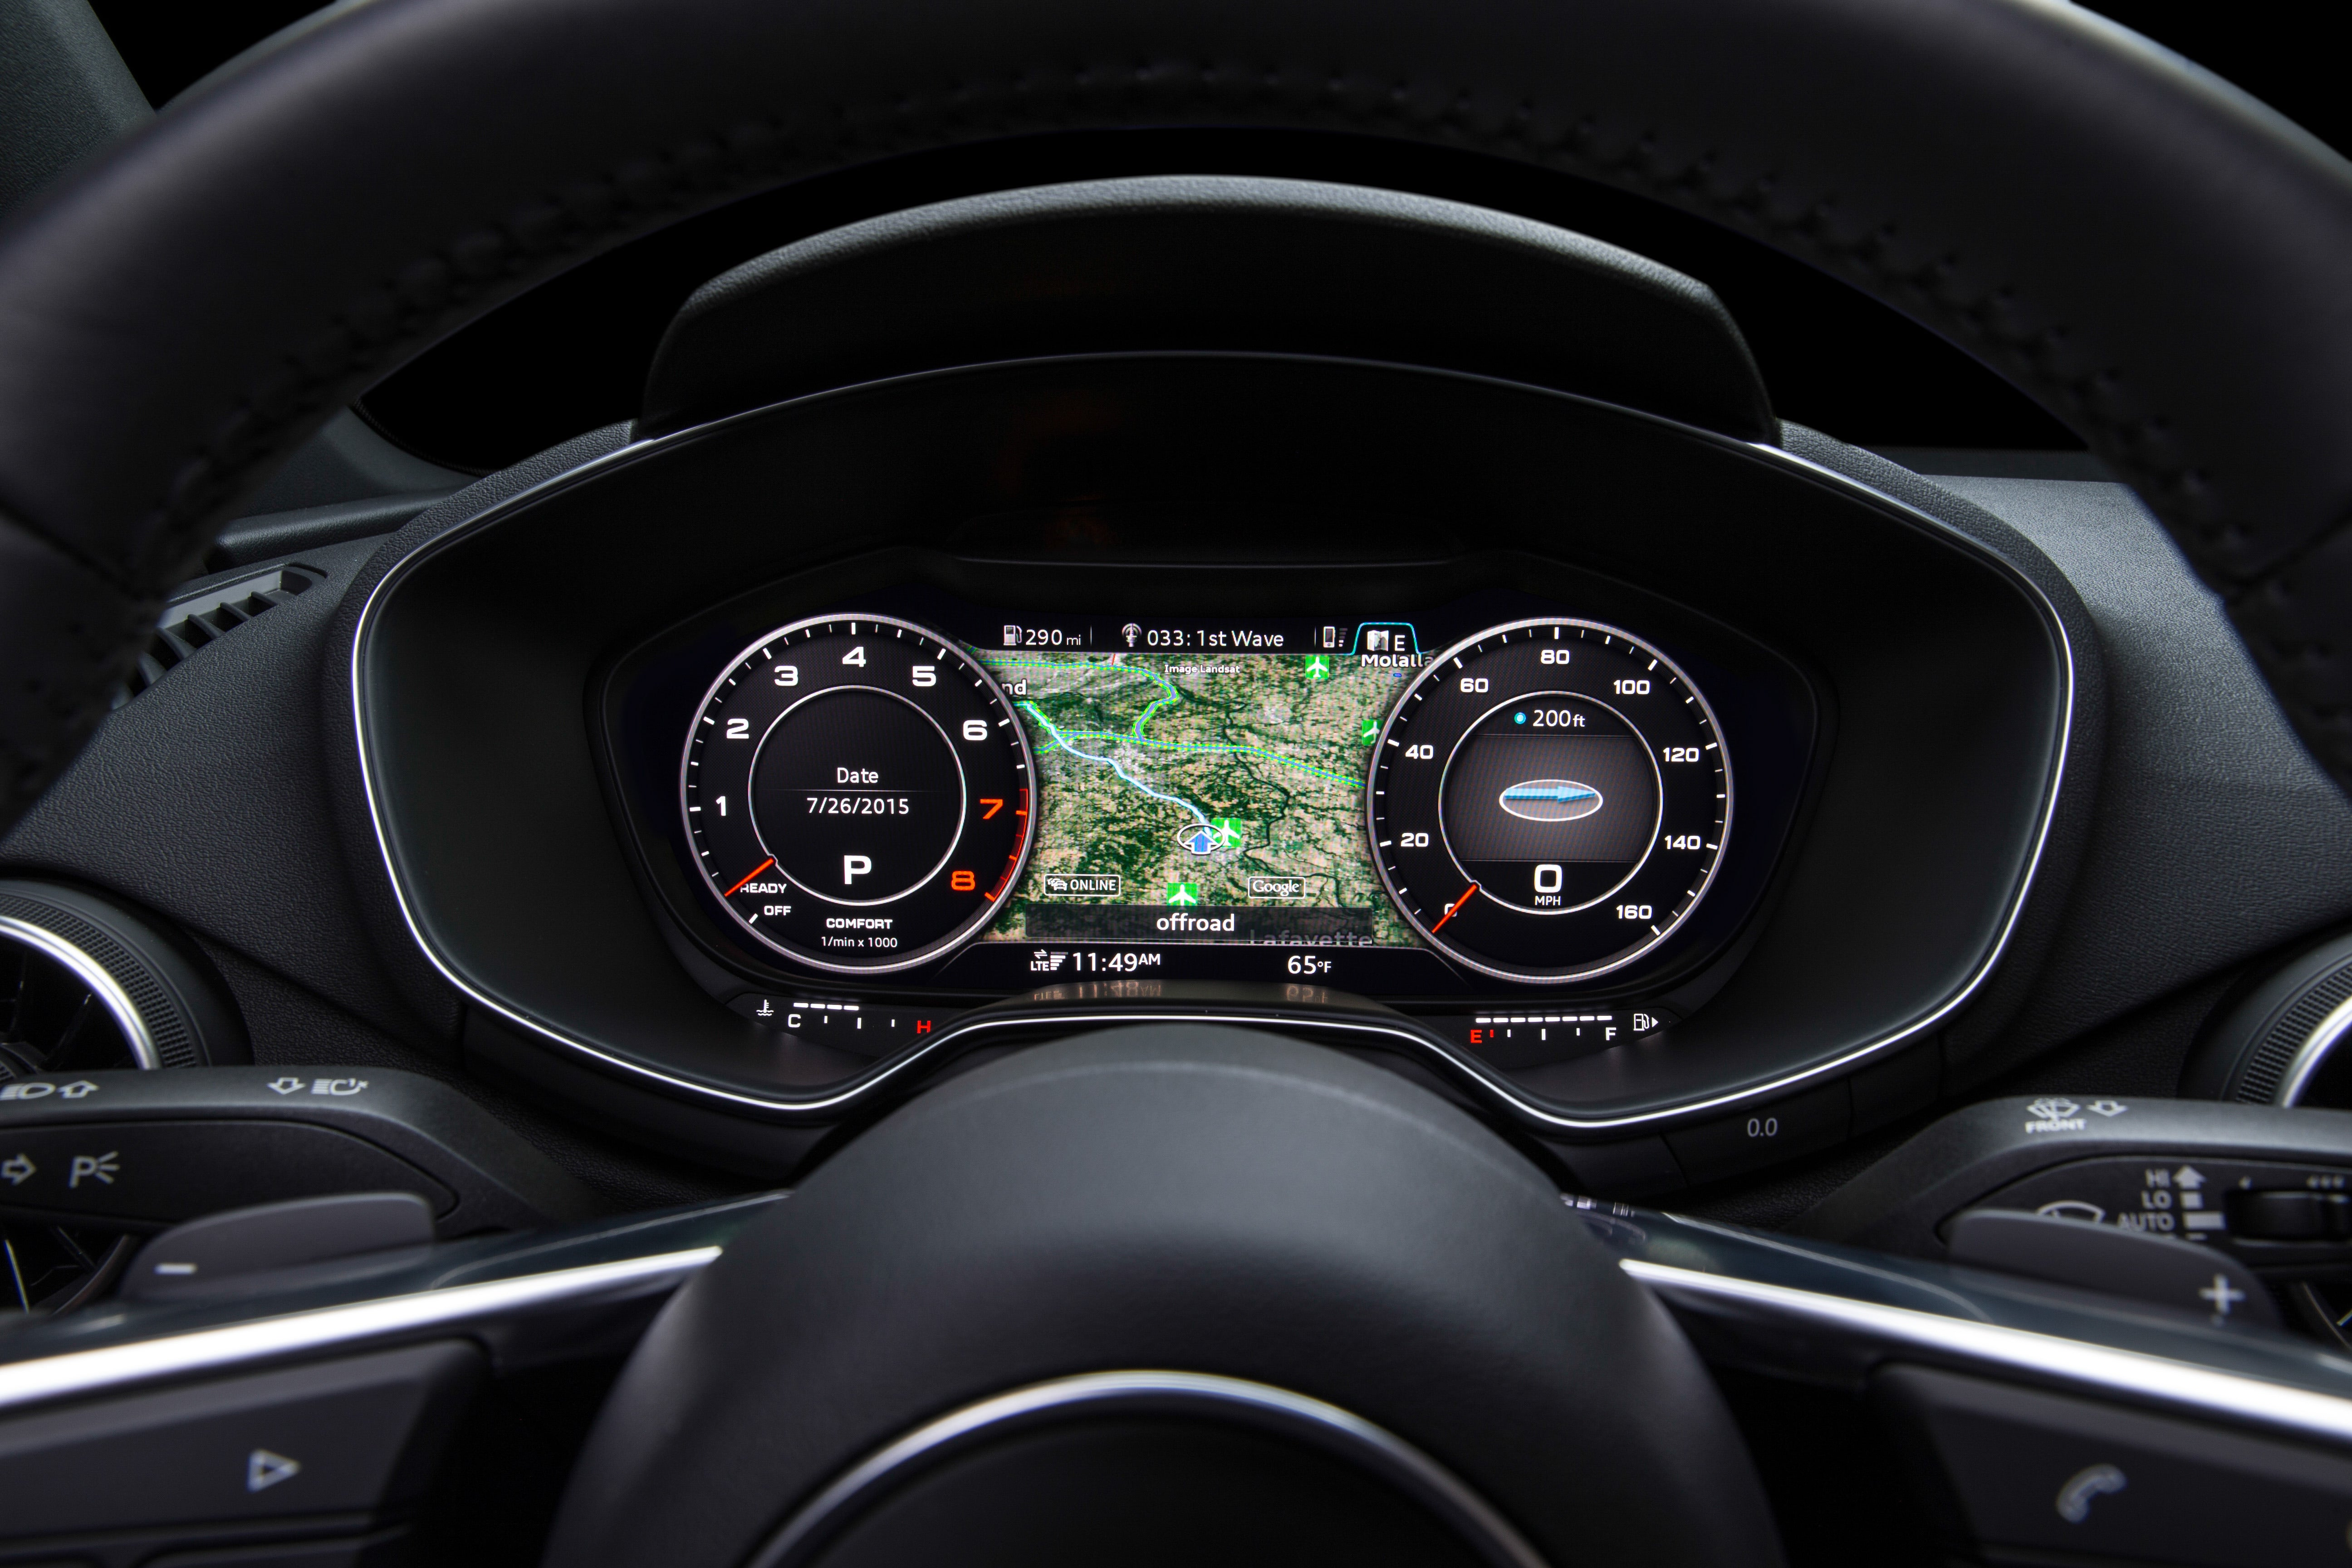 9 Views Of The All Digital Virtual Cockpit In The 2016 Audi Tt Pcworld